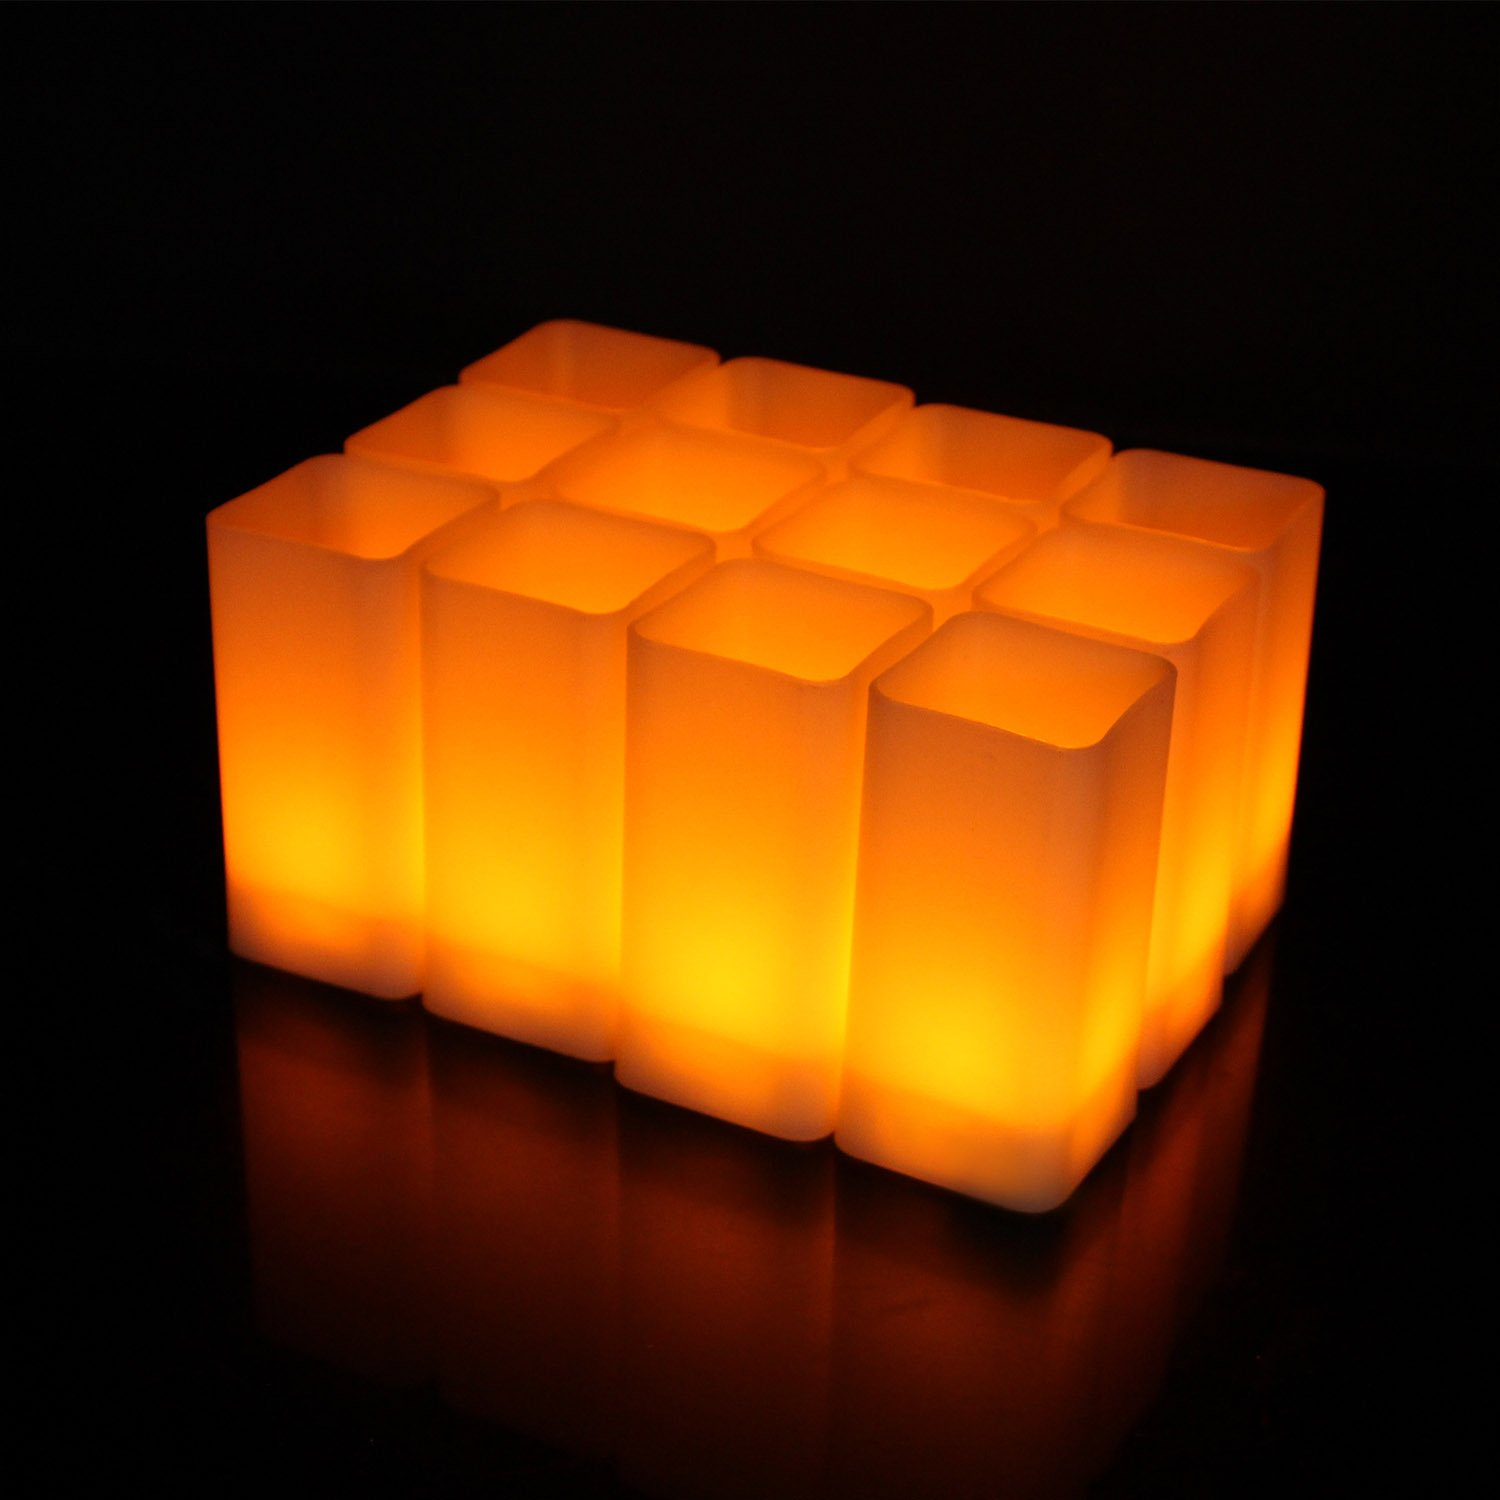 LedBack Flameless LED Square Candles Amber Yellow Flickering Pillar Candles Small Tea Lights Battery Operated Candles for Party Wedding Holiday Home Decoration 12 PCS (Batteries Included)